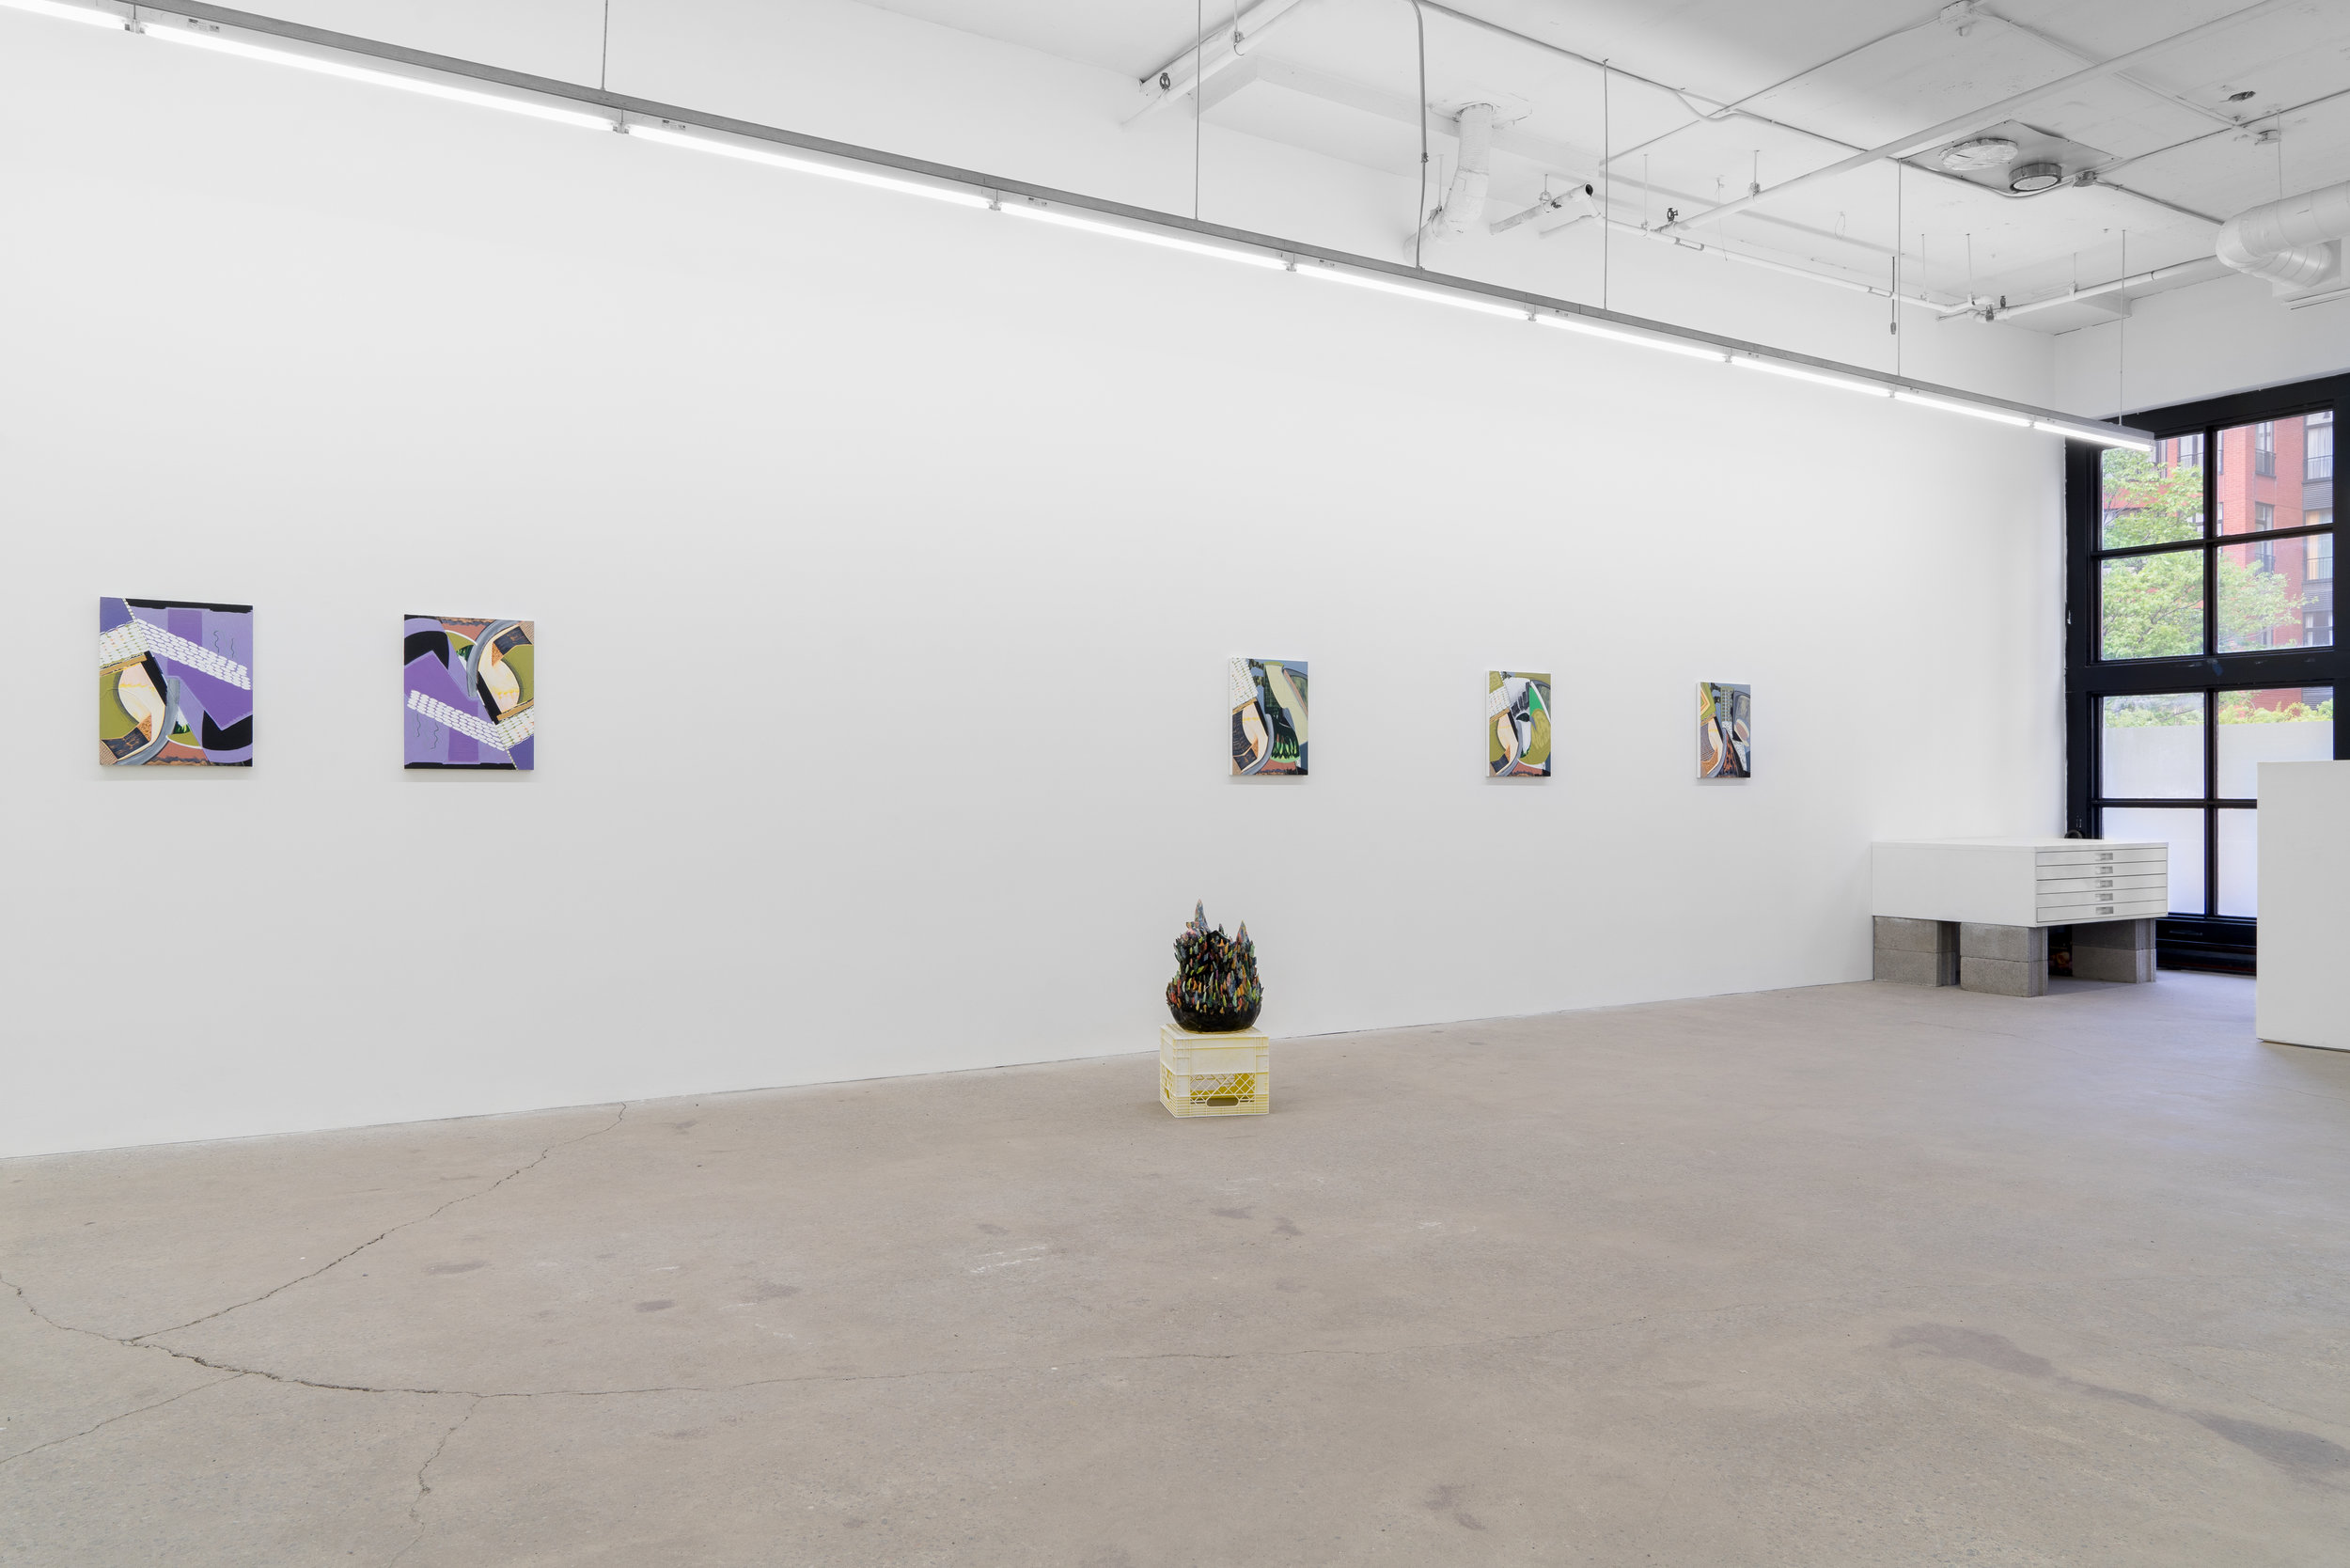 Magalie Guérin & Philippe Caron Lefebvre, 2019, exhibition view, Galerie Nicolas Robert, photo : Jean-Michael Seminaro